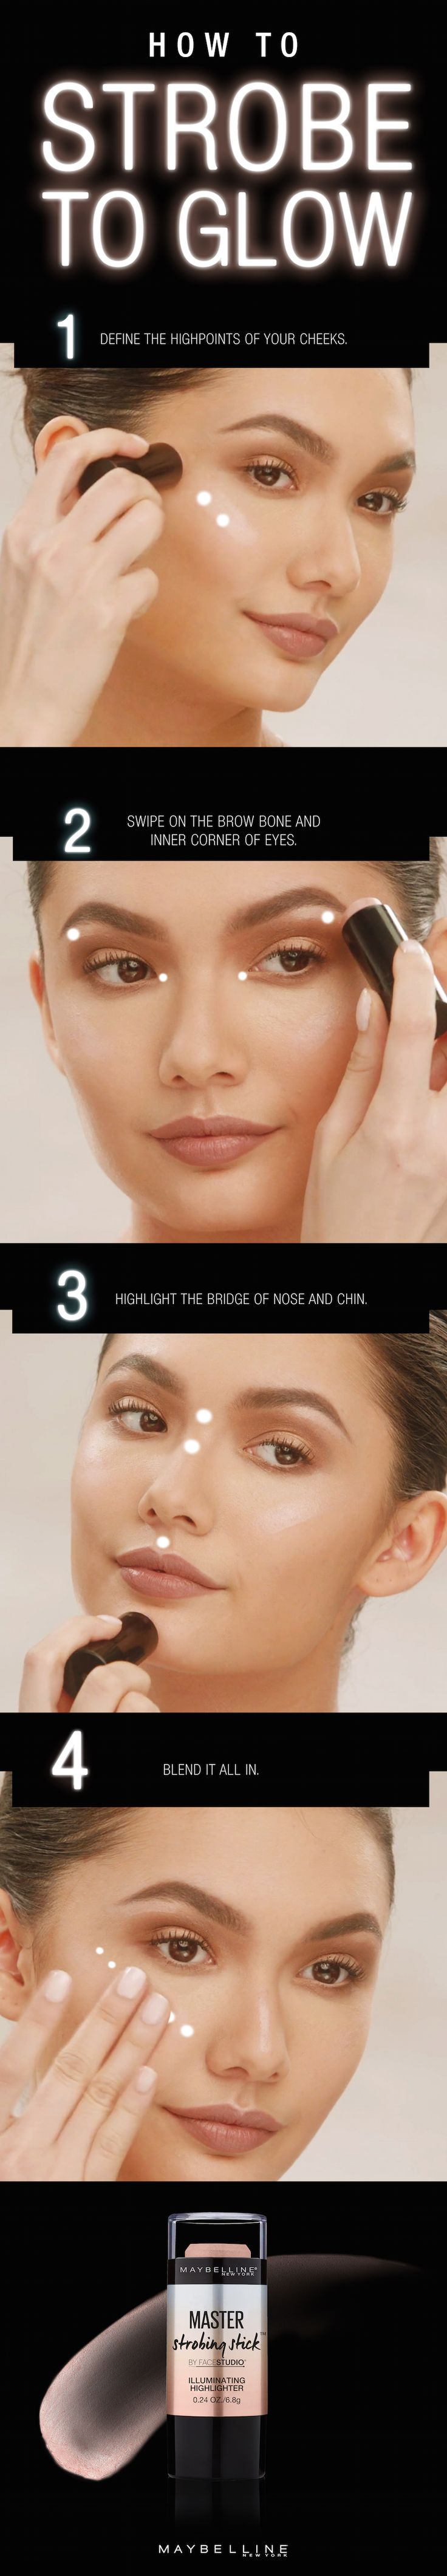 Maybelline Master Strobing Stick lights up your best features. This step-by-step tutorial will show you how to make it happen. How To: Apply to high points of your face, blending with fingertips. The illuminating shimmer completes any summer makeup look. Bring a simple makeup look to the next level or go full glam by layering on the highlight. Get ready to flaunt effortless dimension and stunning radiance. Let's strobe to glow for the holidays.